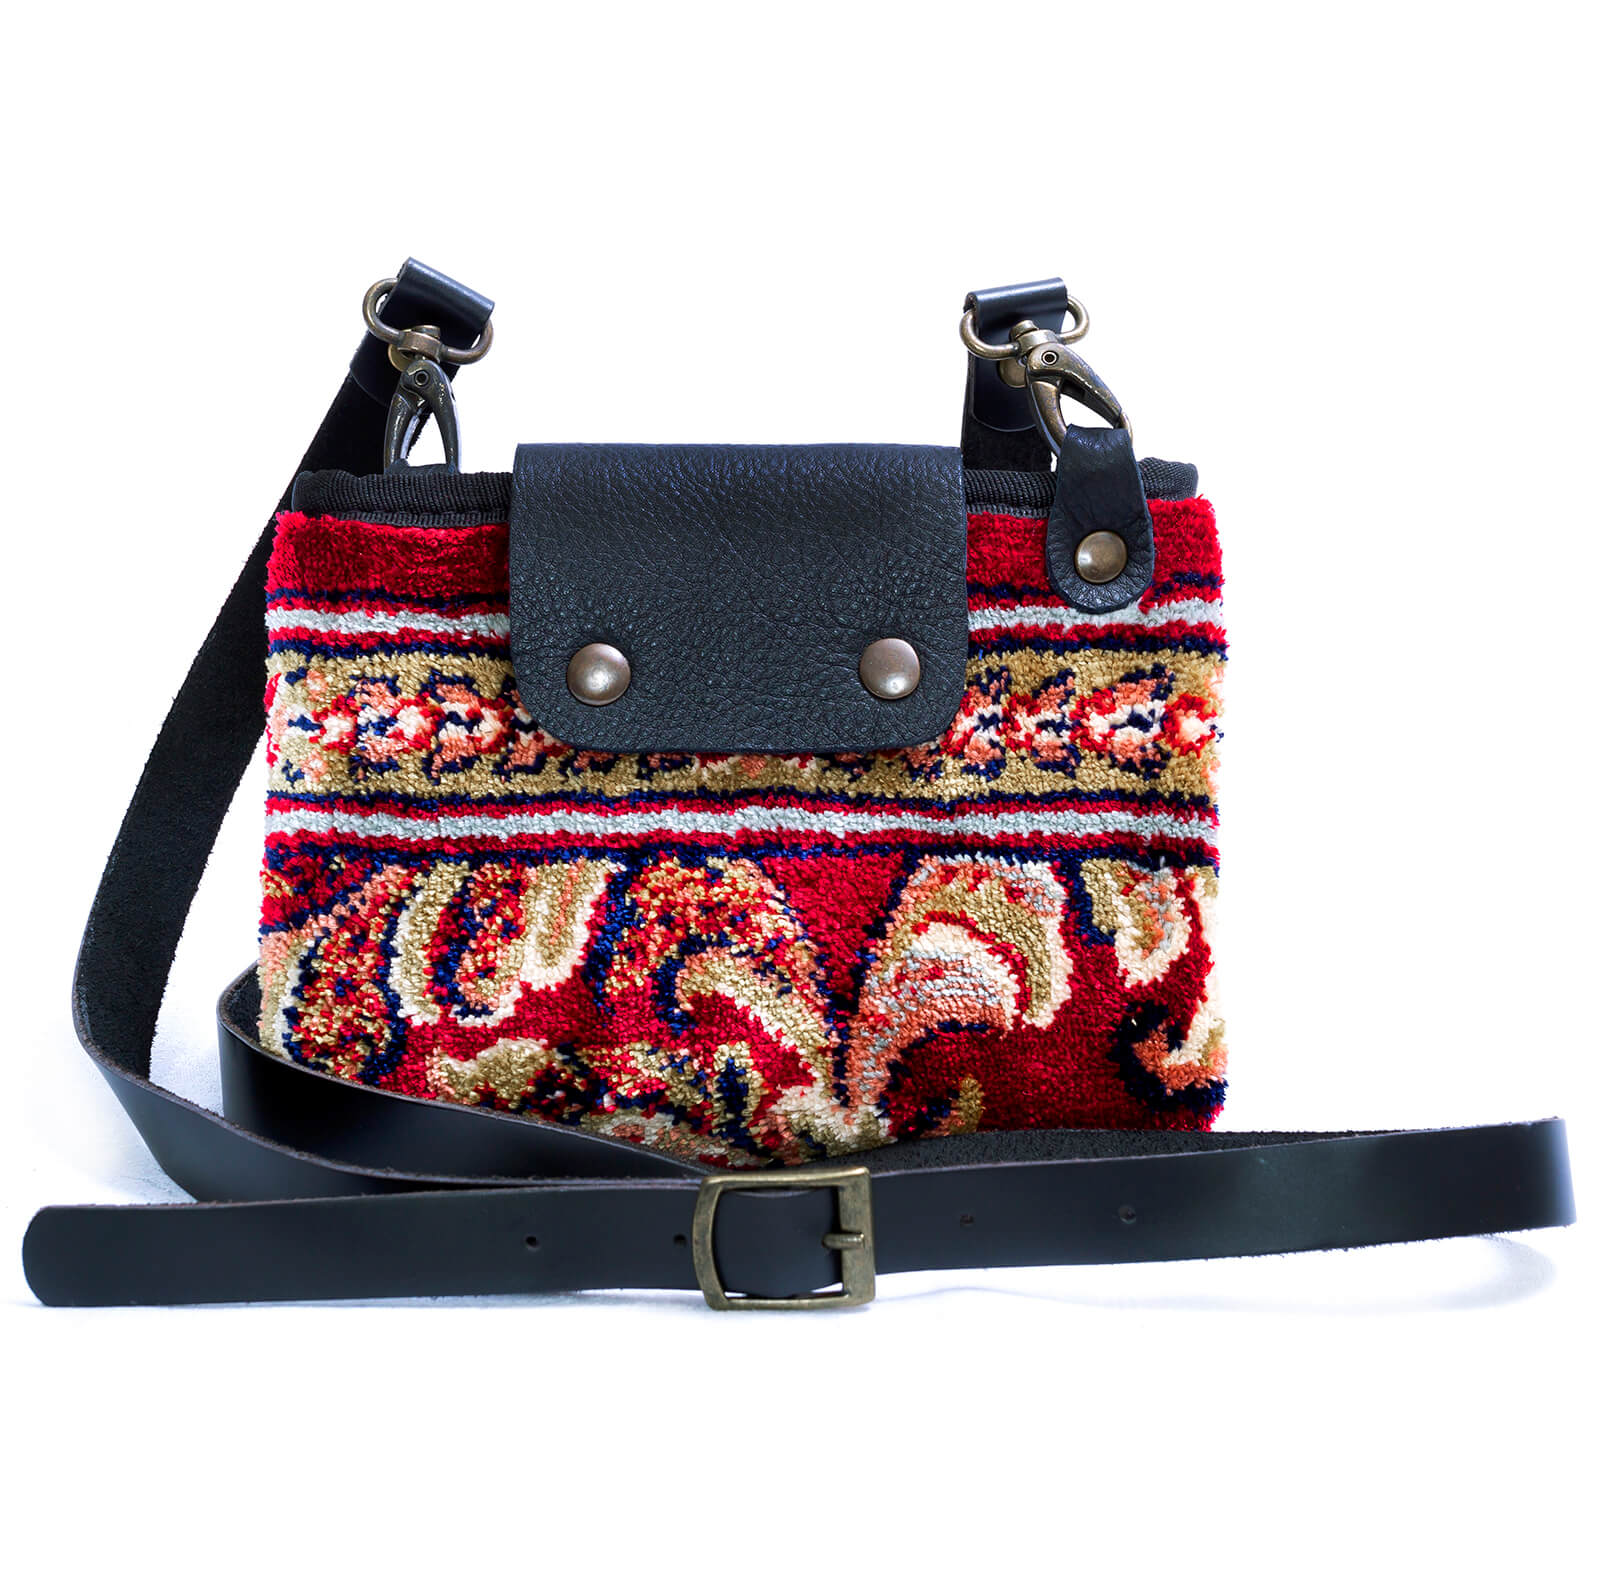 Image of MYSTERY Blossom Red Victorian Carpet Bag.